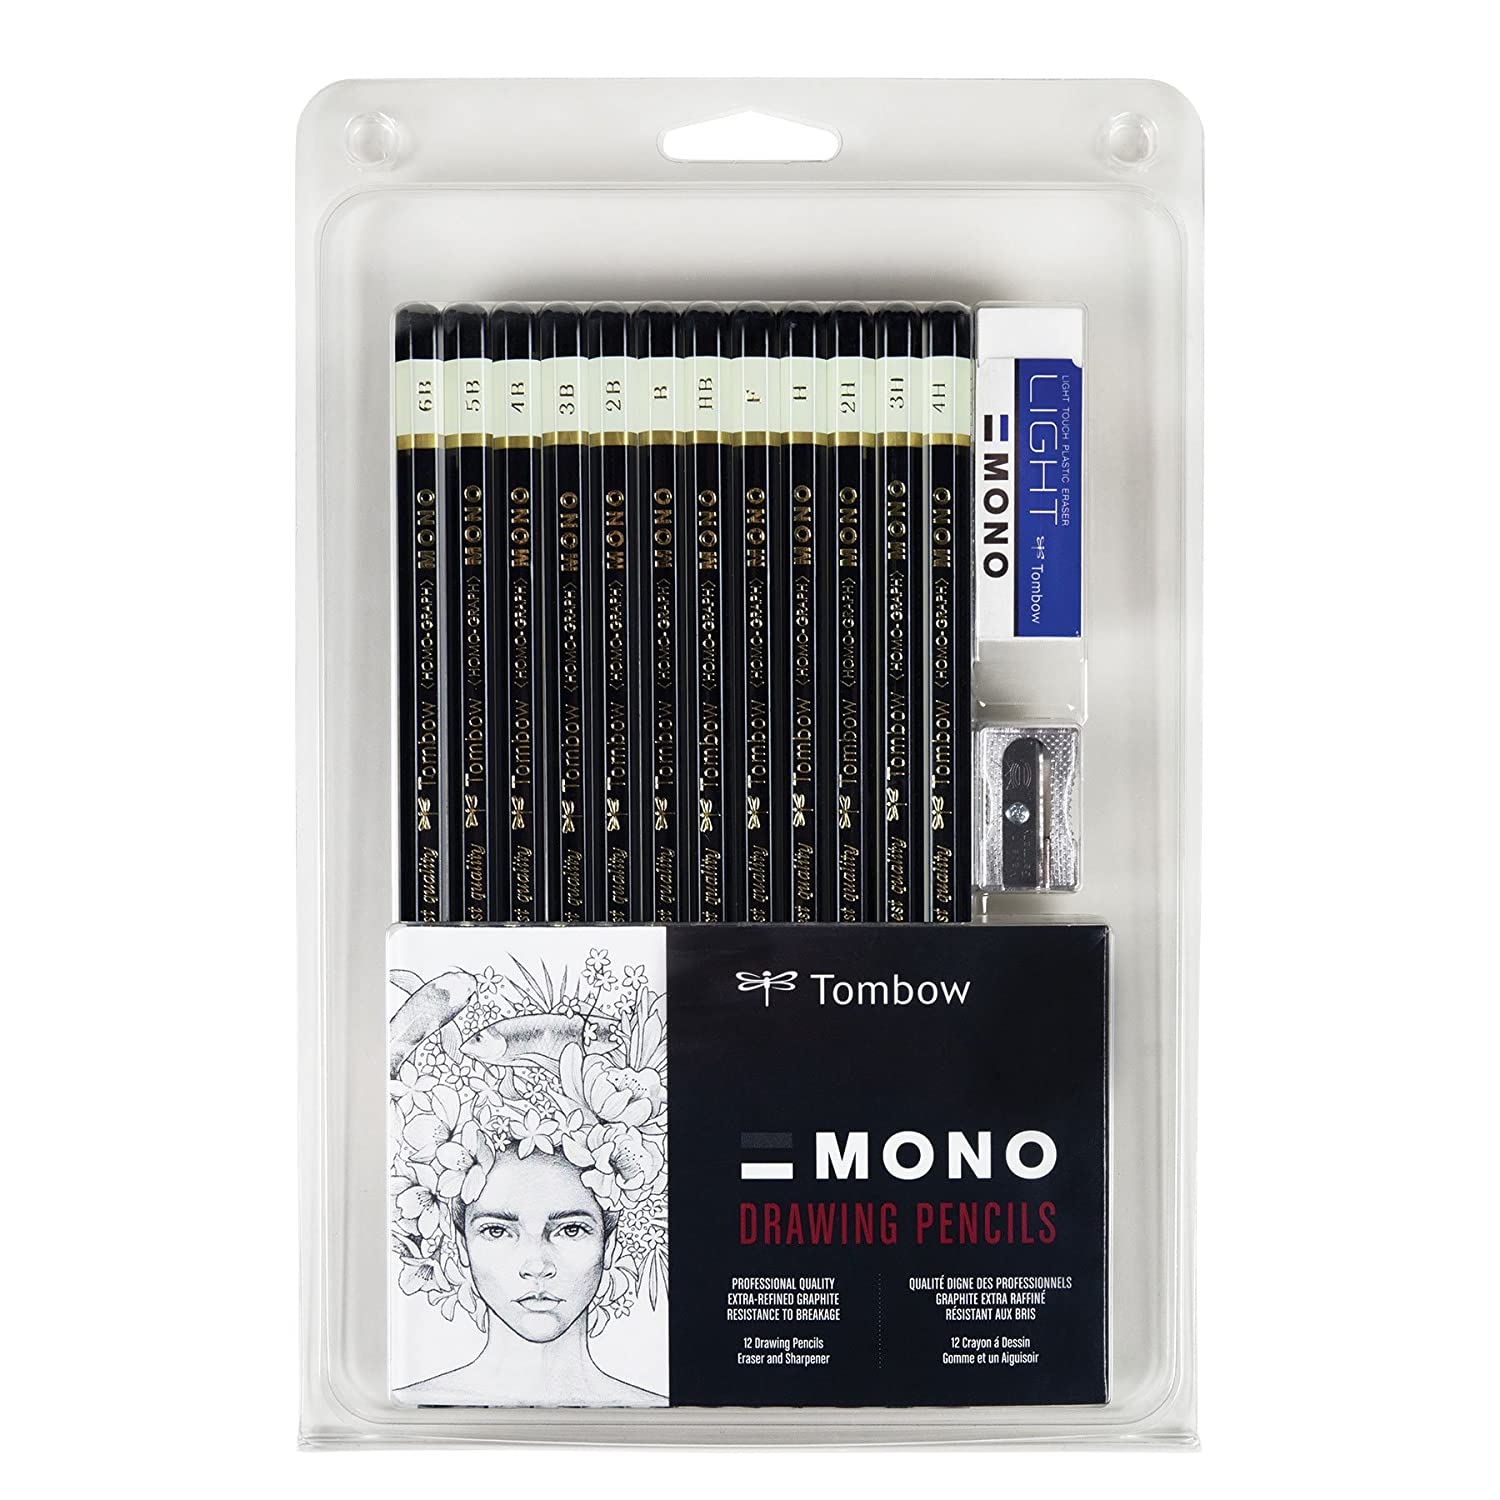 Tombow 51523 MONO Drawing Pencil Set, Assorted Degrees, 12-Pack. Professional Quality Graphite Pencil Set with Eraser and Sharpener AMERICAN TOMBOW INC